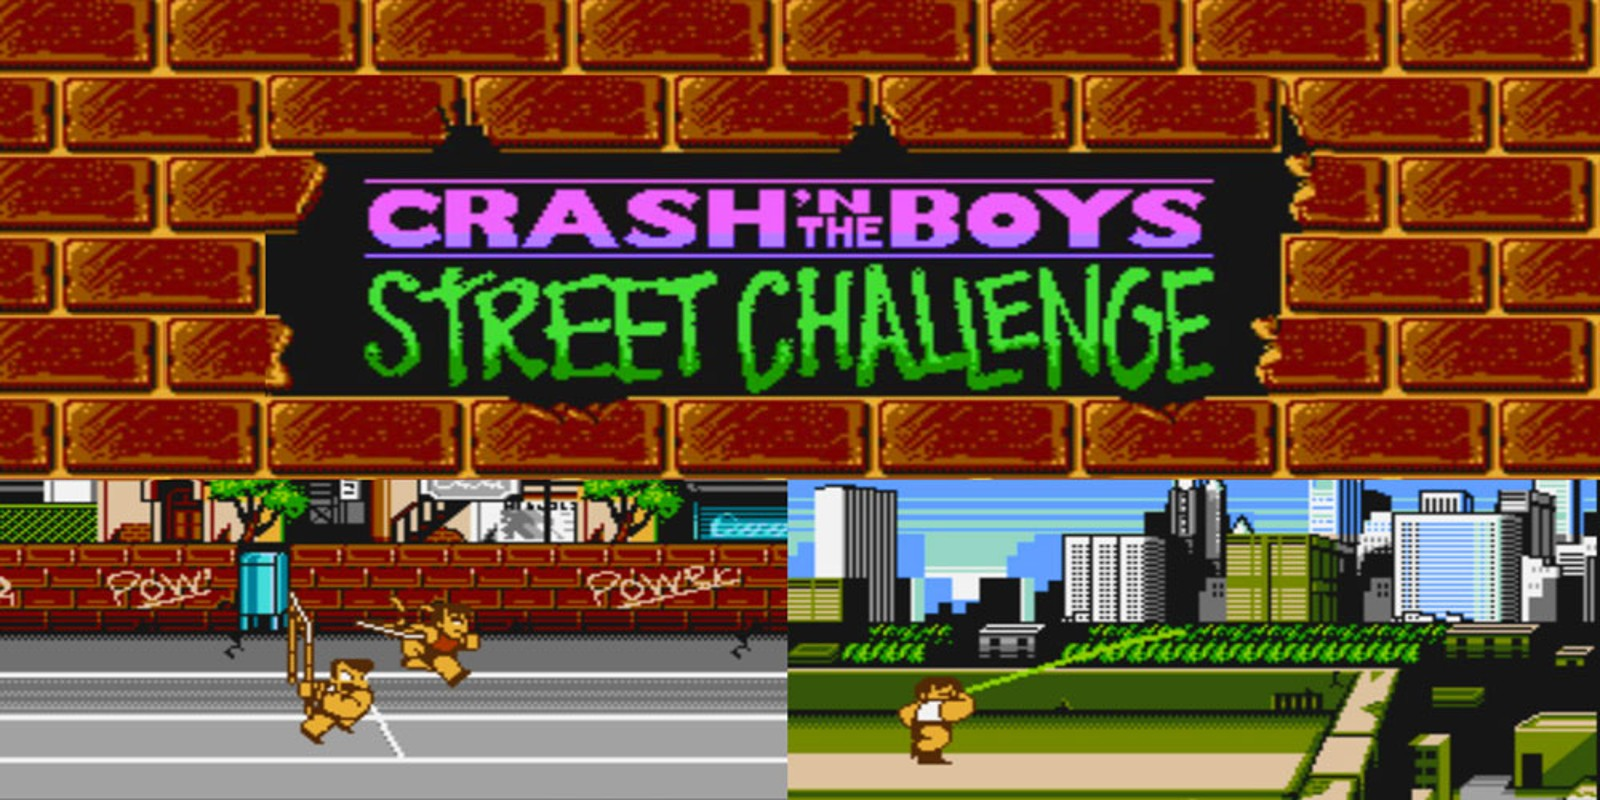 Crash'n the Boys Street Challenge